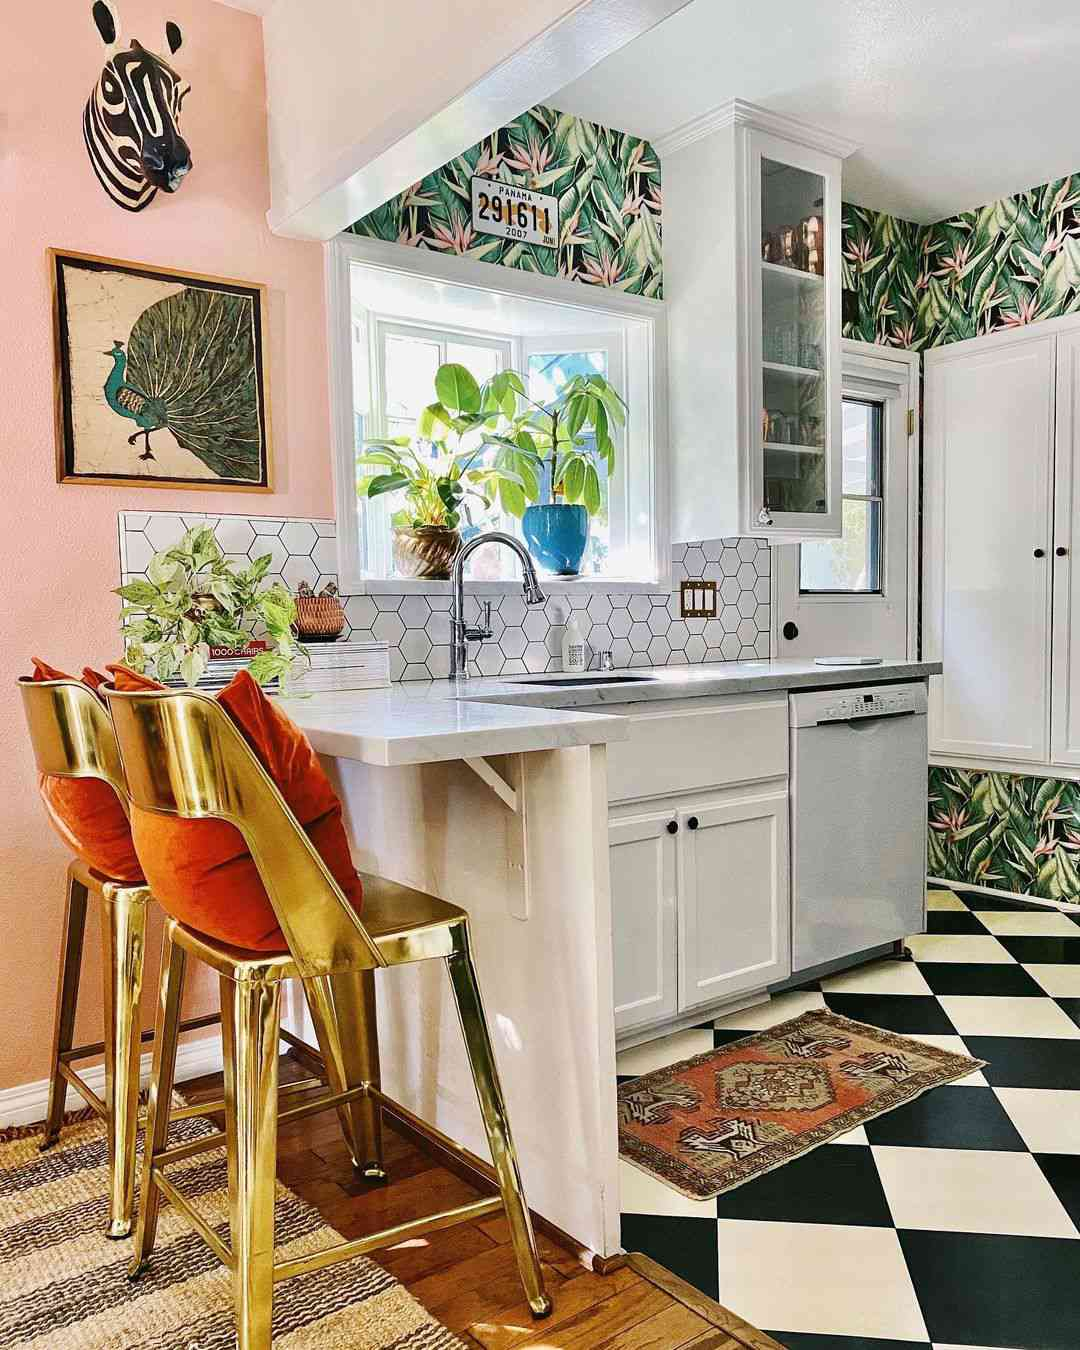 Colorful patterned kitchen